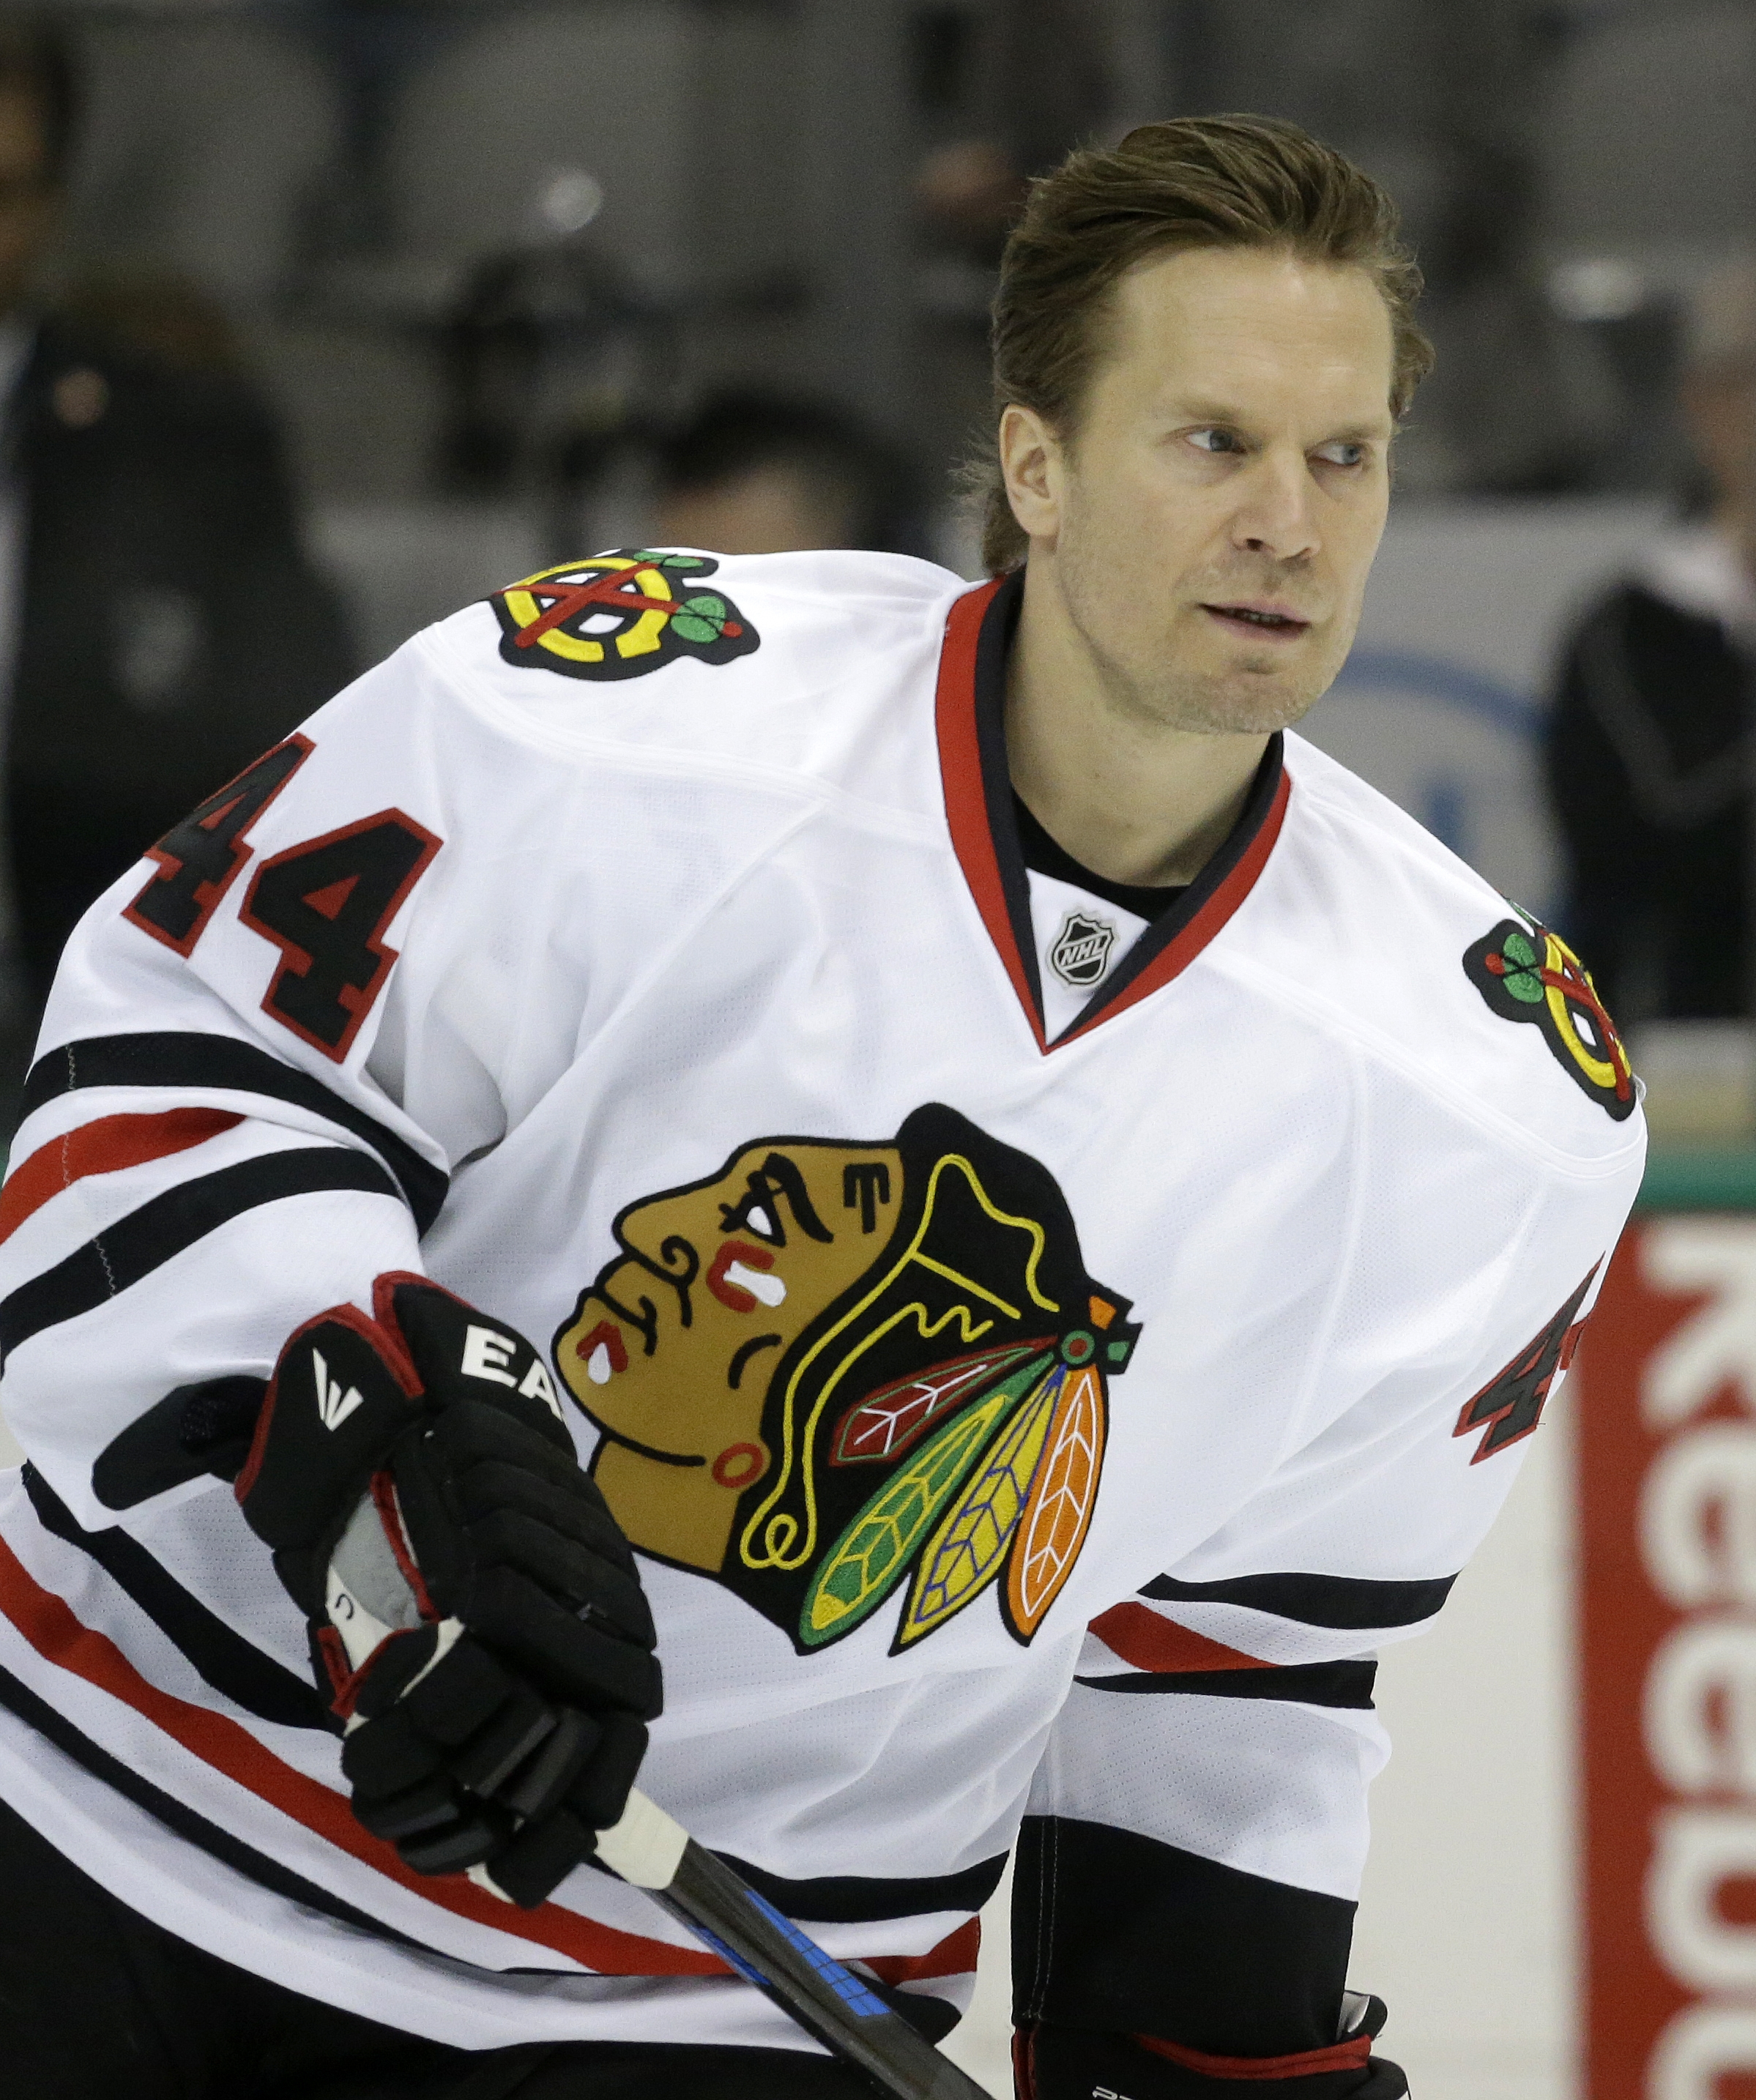 Chicago Blackhawks defenseman Kimmo Timonen (44) skates  the ice during warms ups before an NHL hockey game Saturday, March 21, 2015, in Dallas. (AP Photo/LM Otero)